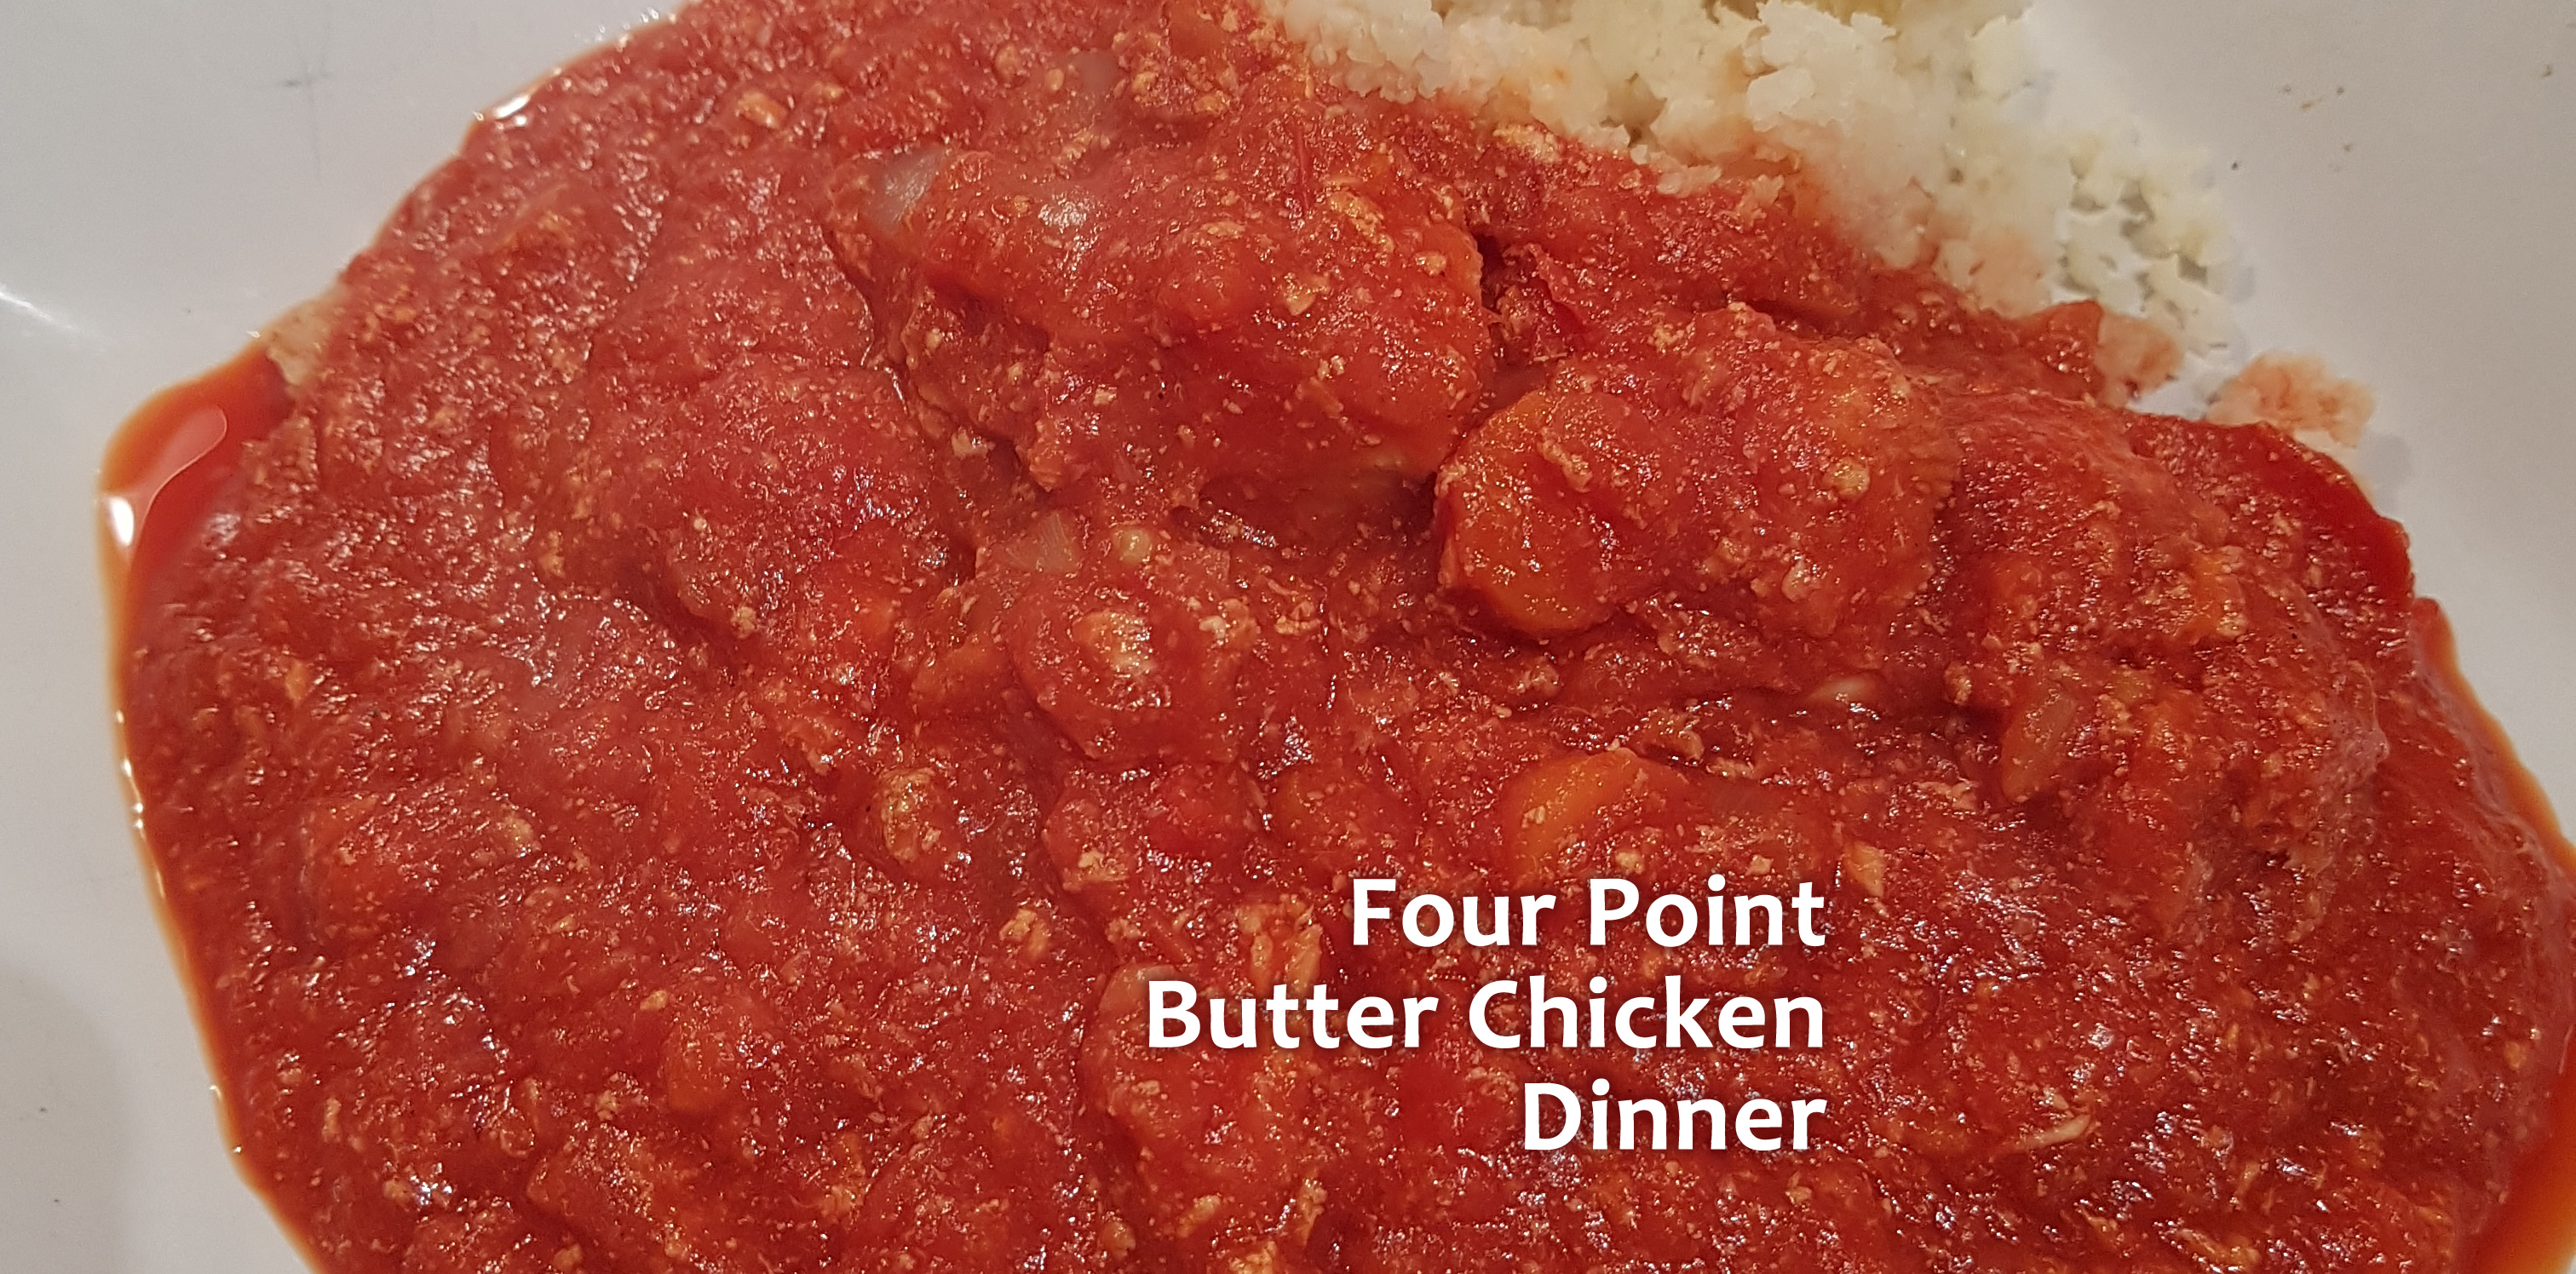 Four Point Butter Chicken Dinner